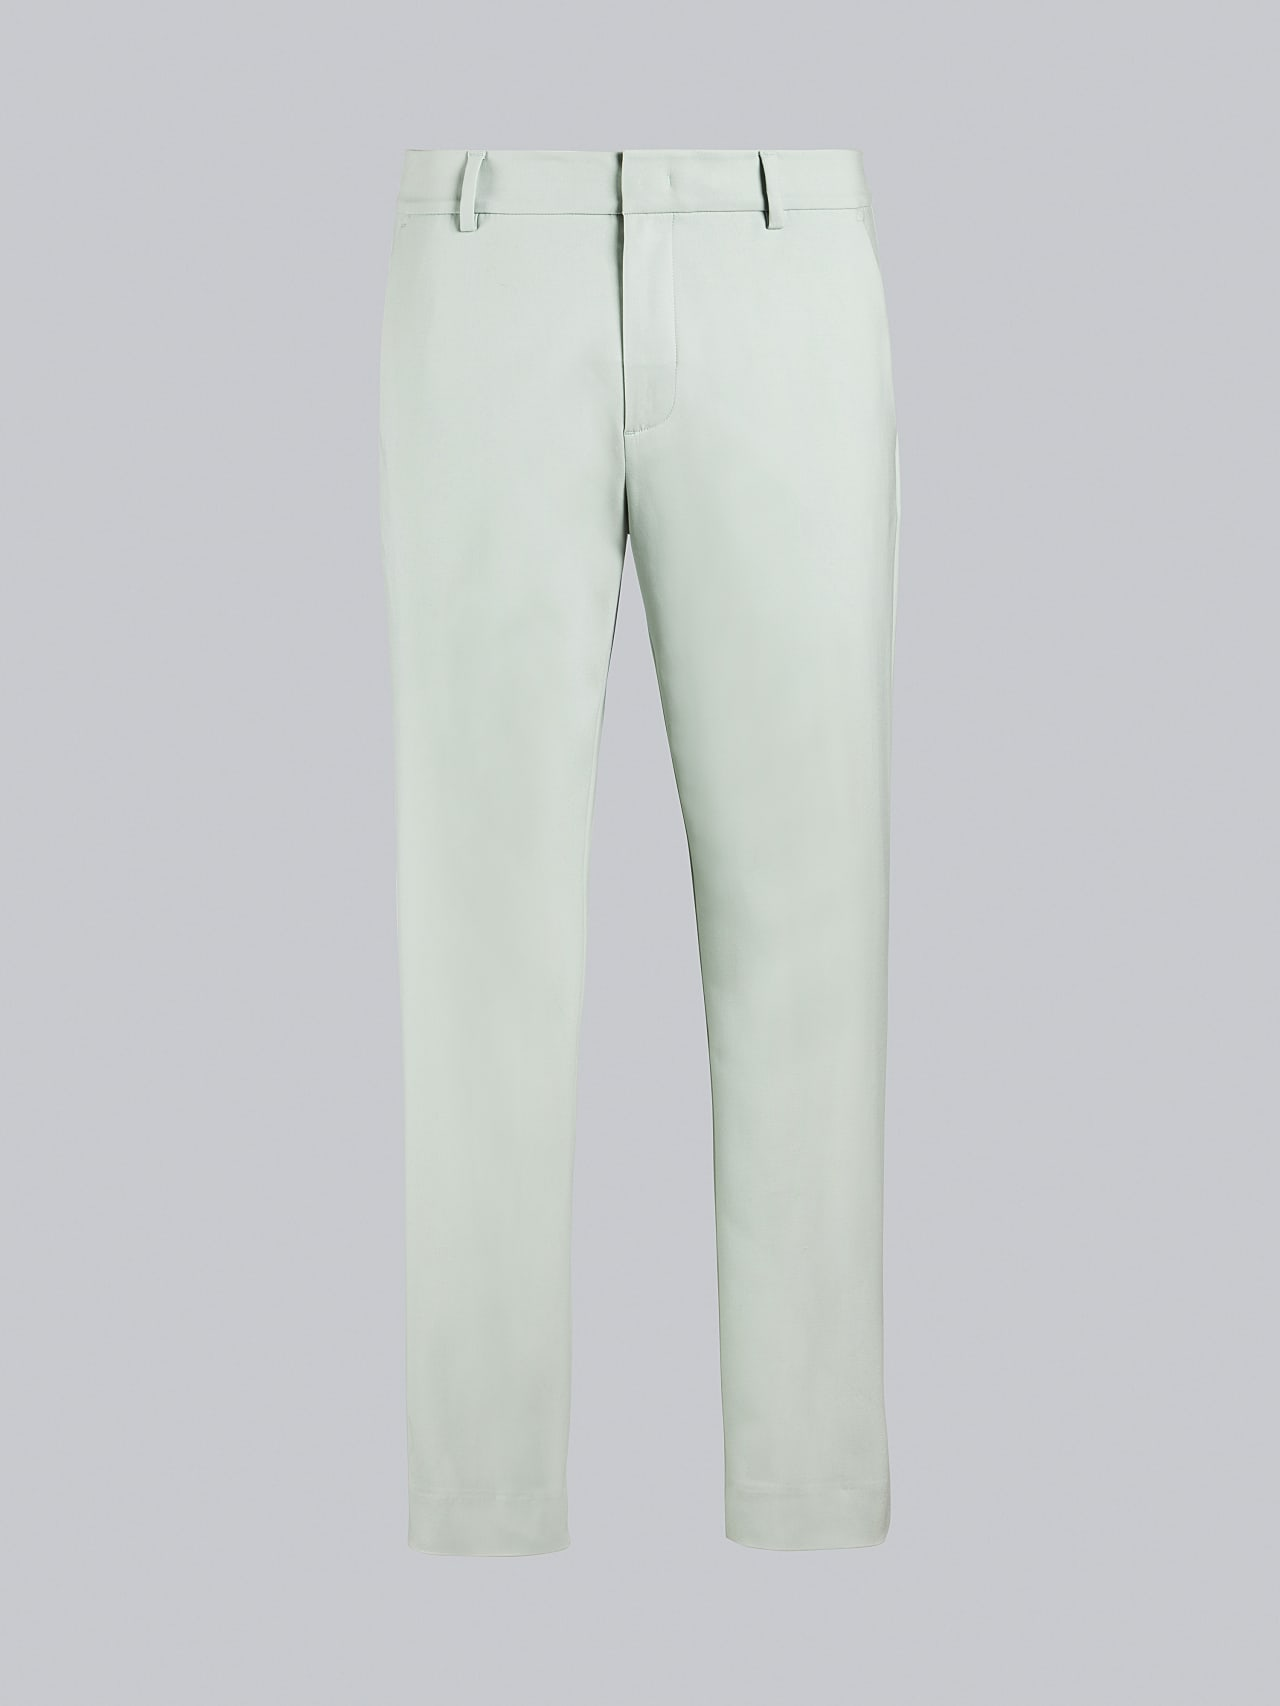 PELAN V1.Y5.02 Tapered Pants with Pleats Pale Blue  Back Alpha Tauri